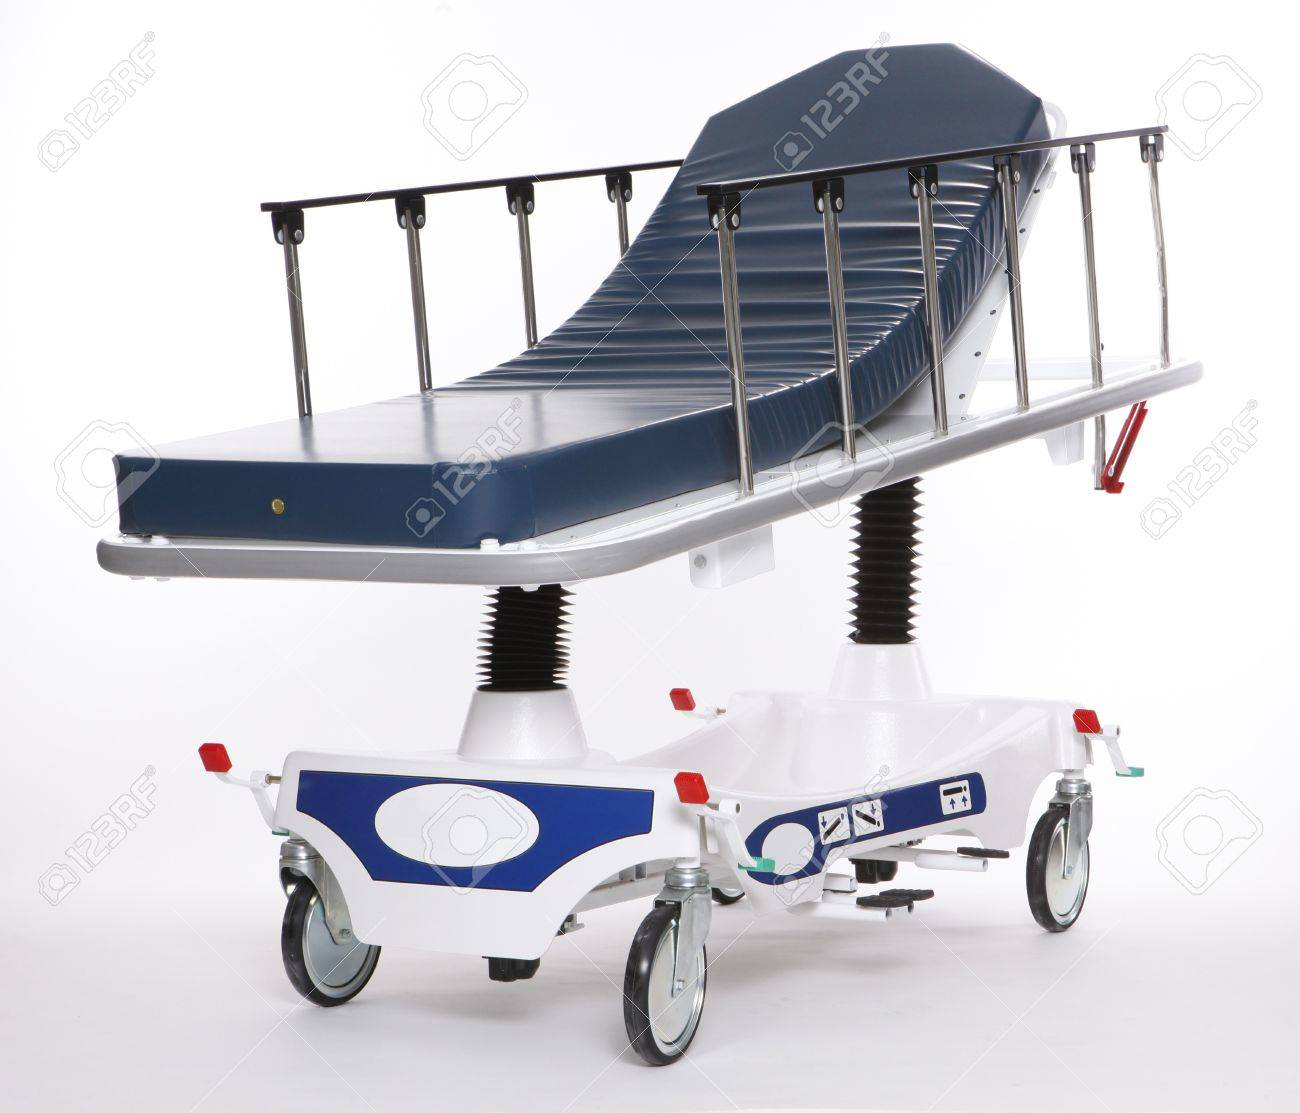 Mobile and adjustable hospital stretcher Stock Photo - 8117995